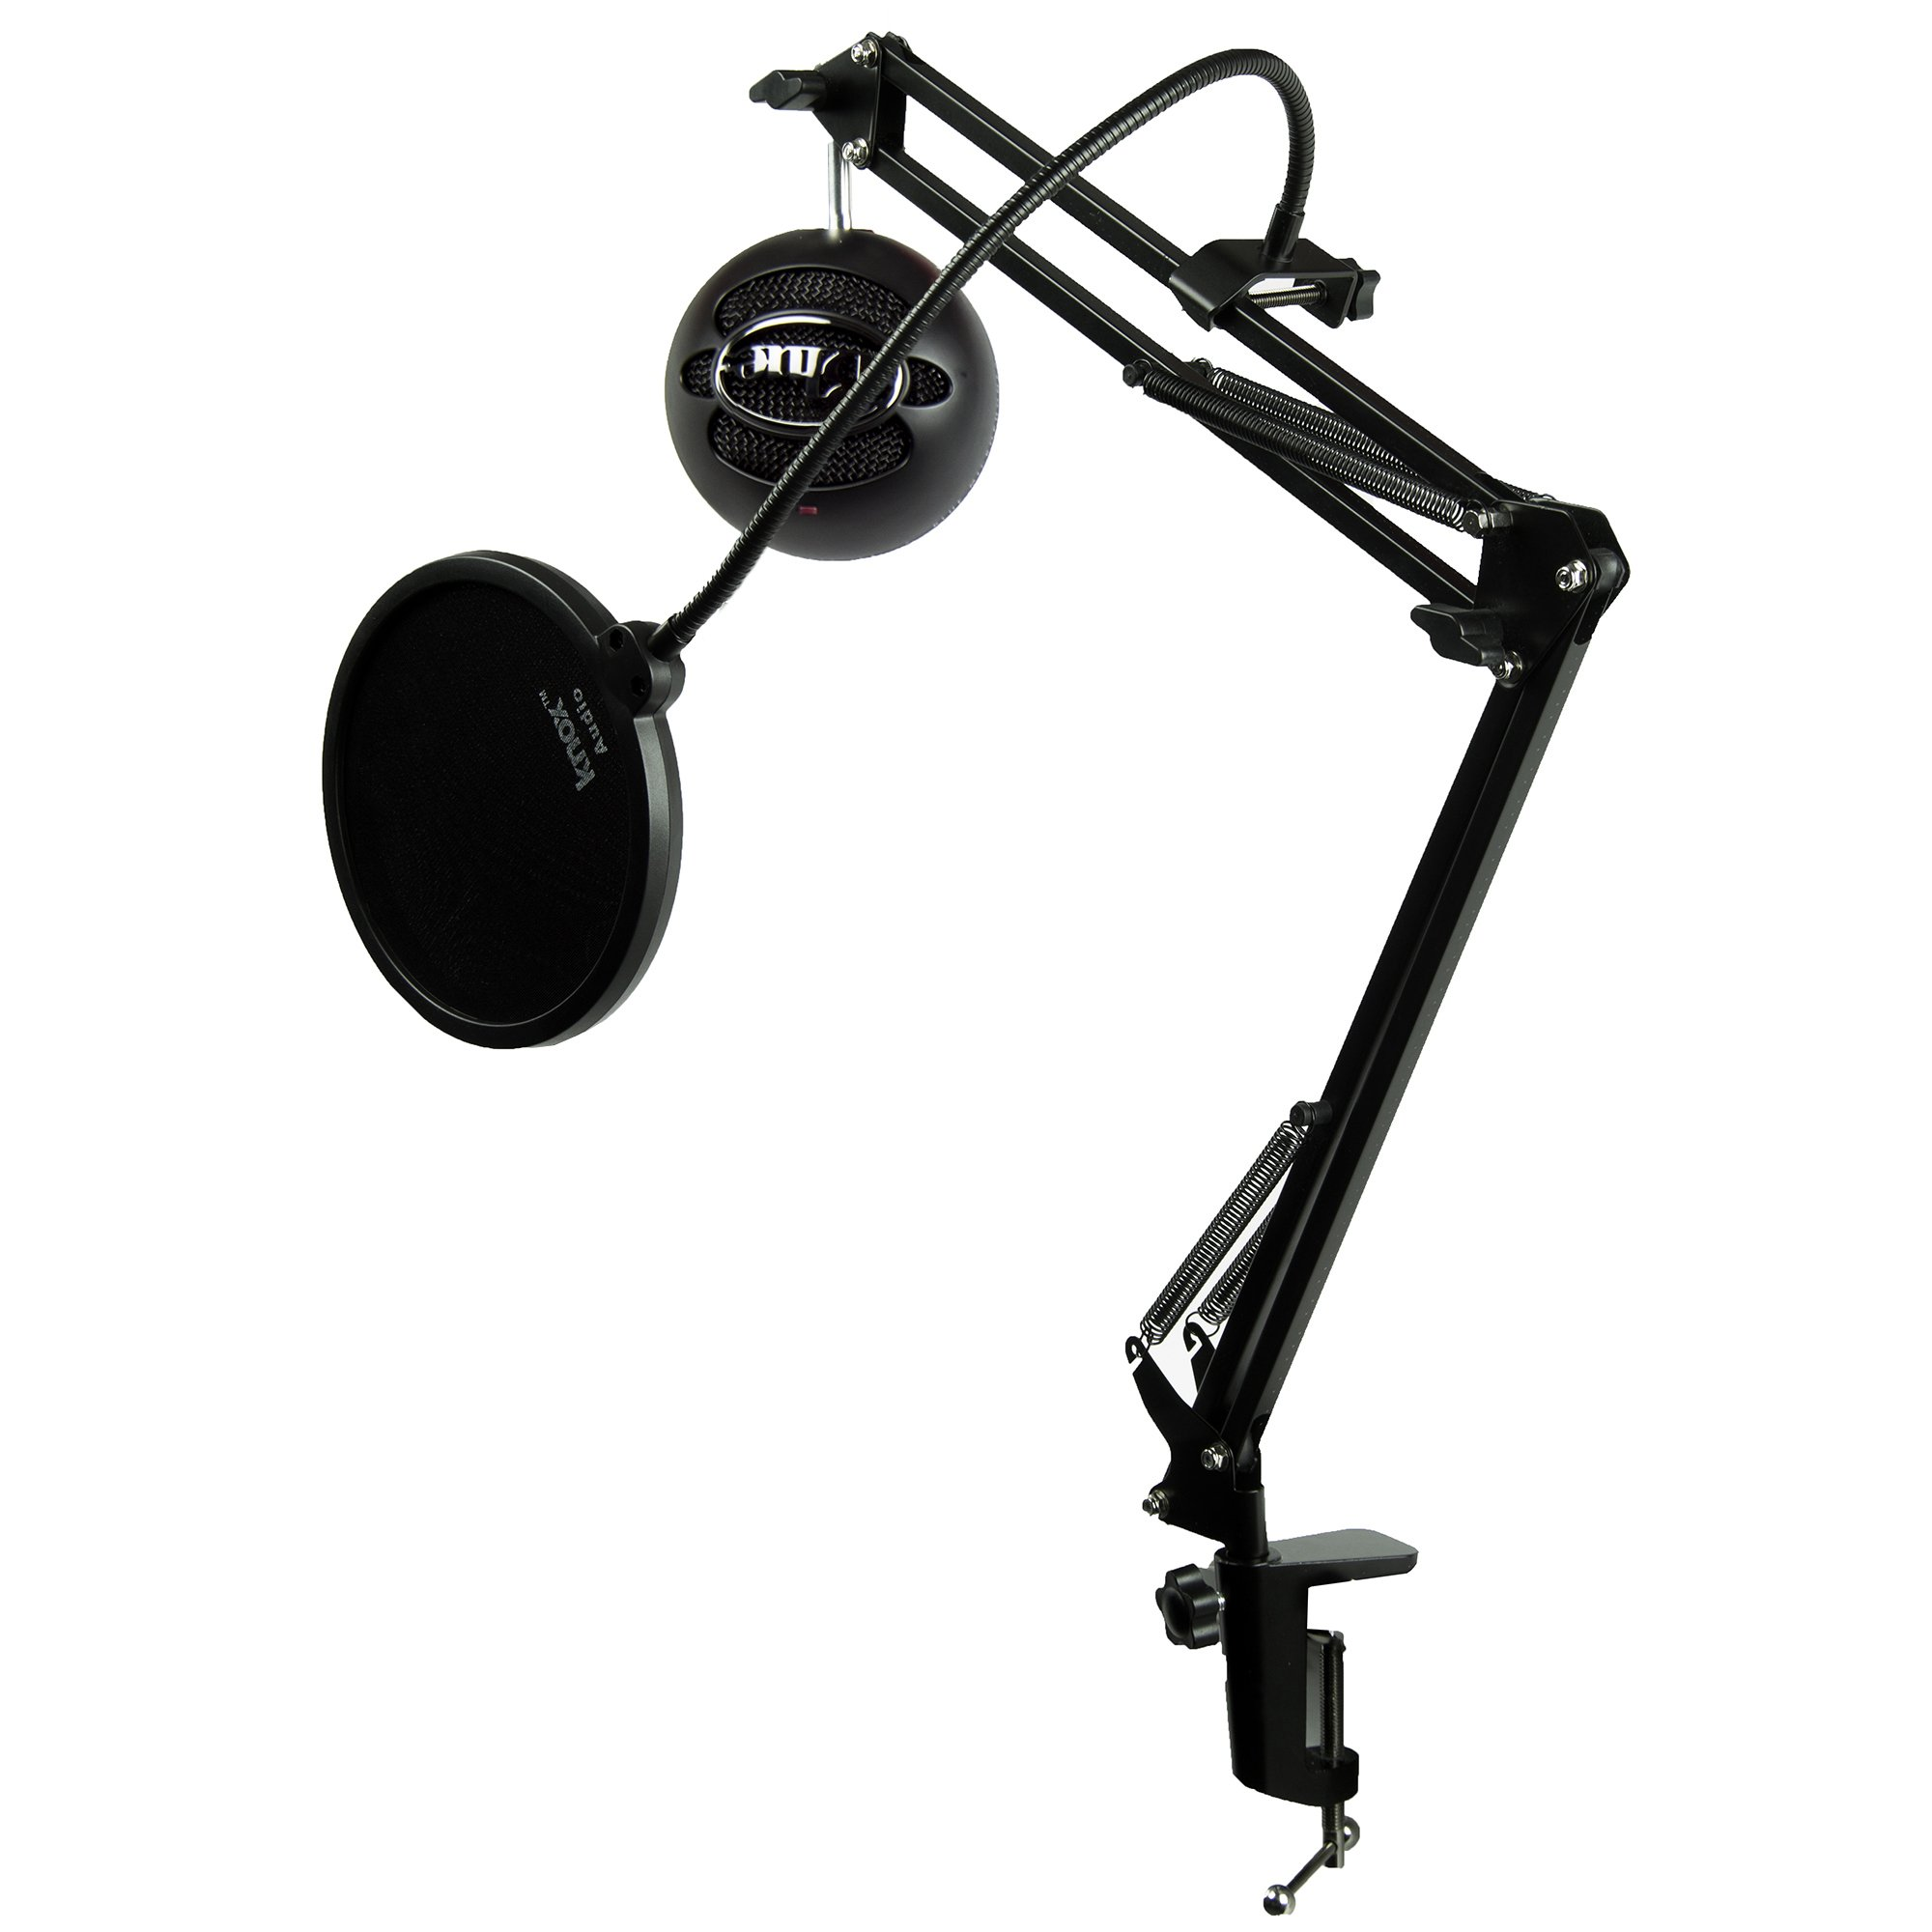 Blue Microphones Snowball iCE Black Microphone with Knox Studio Boom Arm & Pop Filter by Blue Microphones